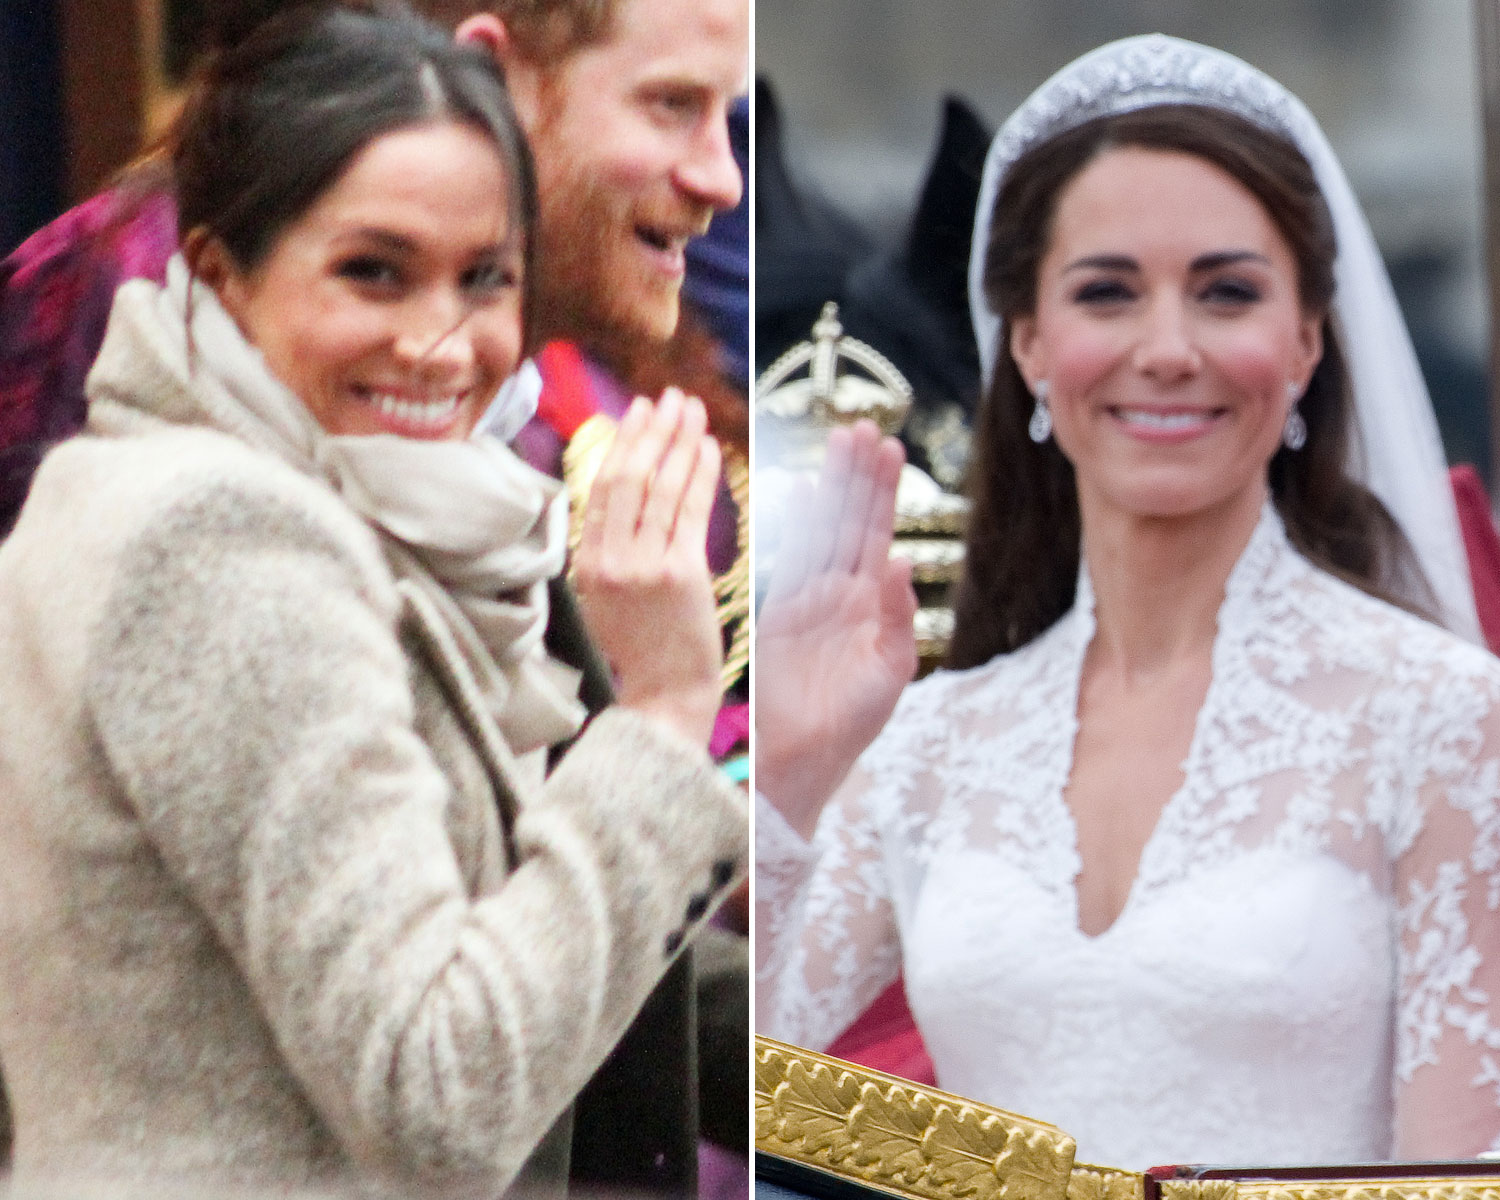 meghan markle won t wear the same tiara as kate middleton here s why meghan markle won t wear the same tiara